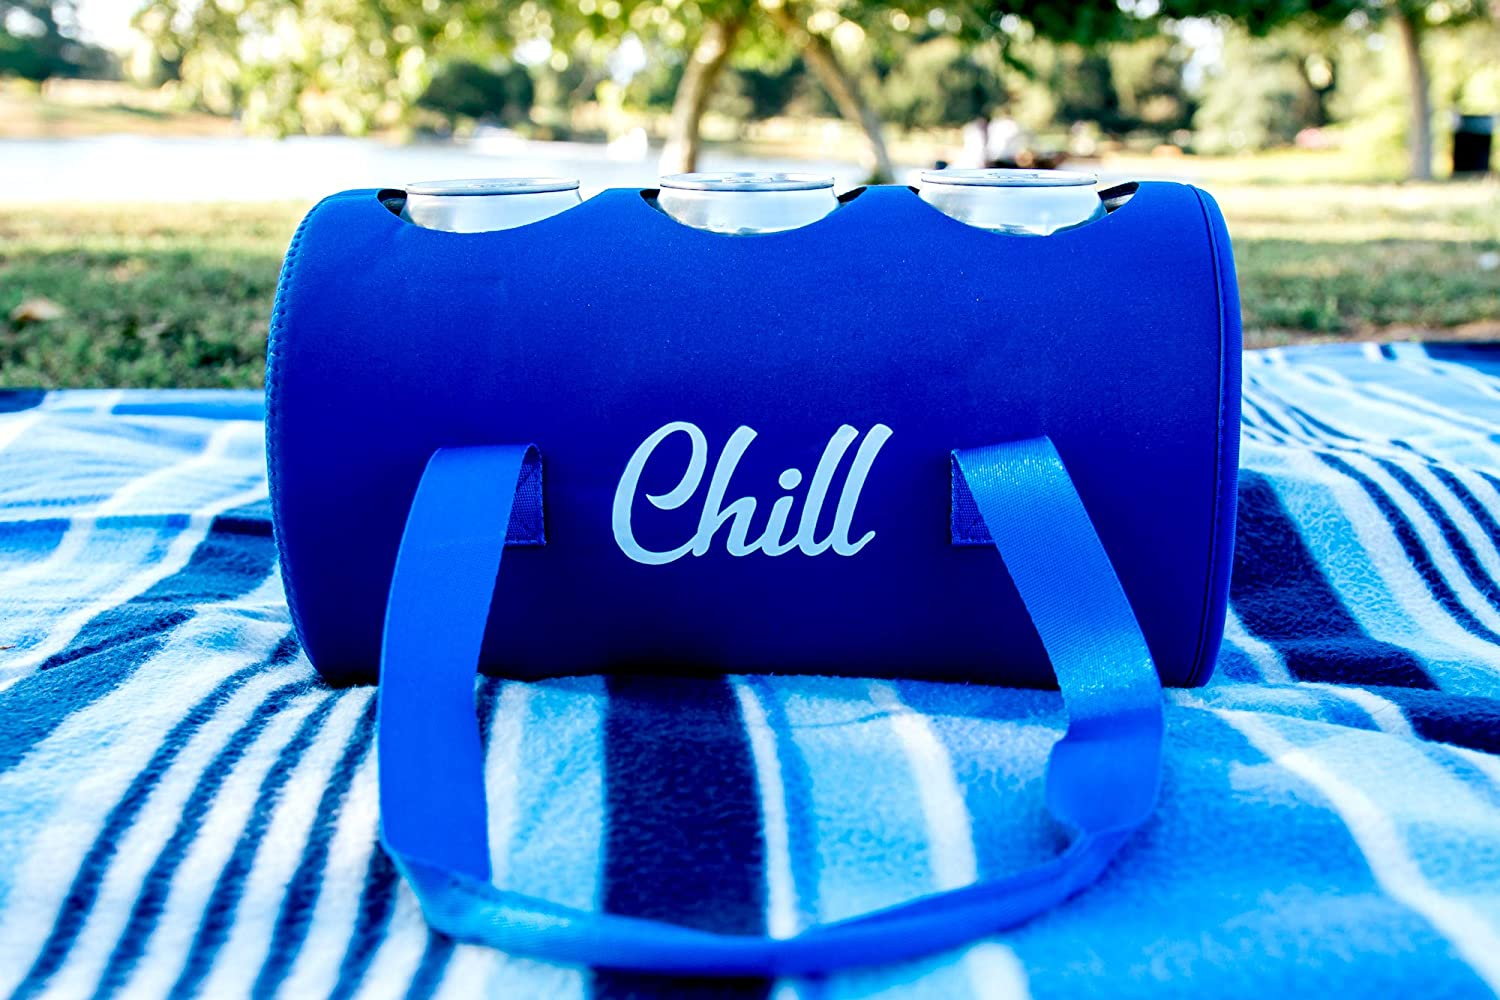 Chill Systems | The Chill Vibes Chiller